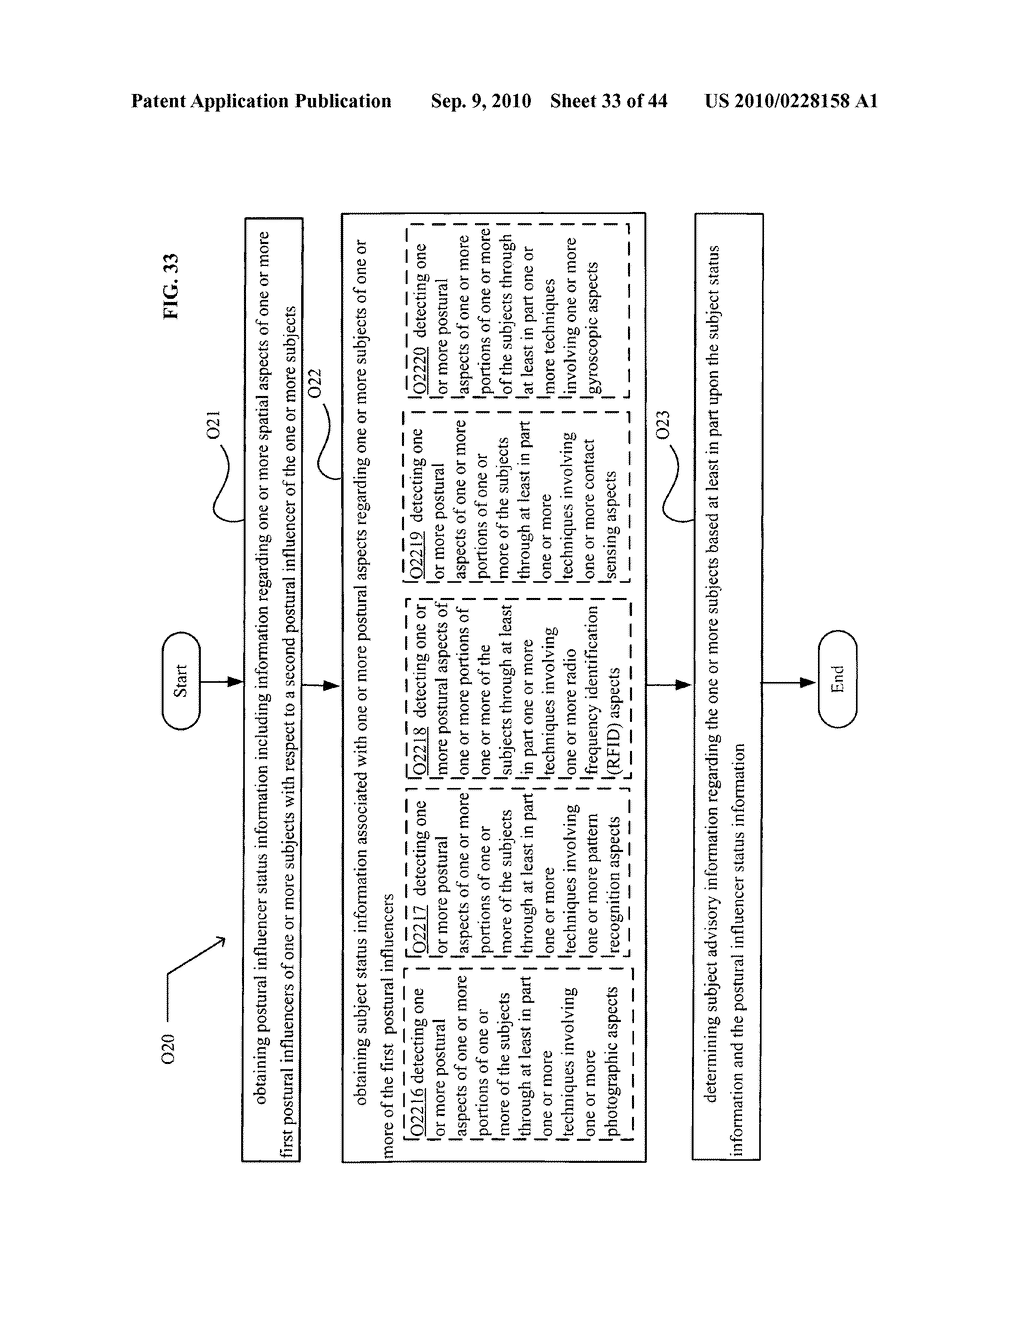 POSTURAL INFORMATION SYSTEM AND METHOD INCLUDING DEVICE LEVEL DETERMINING OF SUBJECT ADVISORY INFORMATION BASED ON SUBJECT STATUS INFORMATION AND POSTURAL INFLUENCER STATUS INFORMATION - diagram, schematic, and image 34